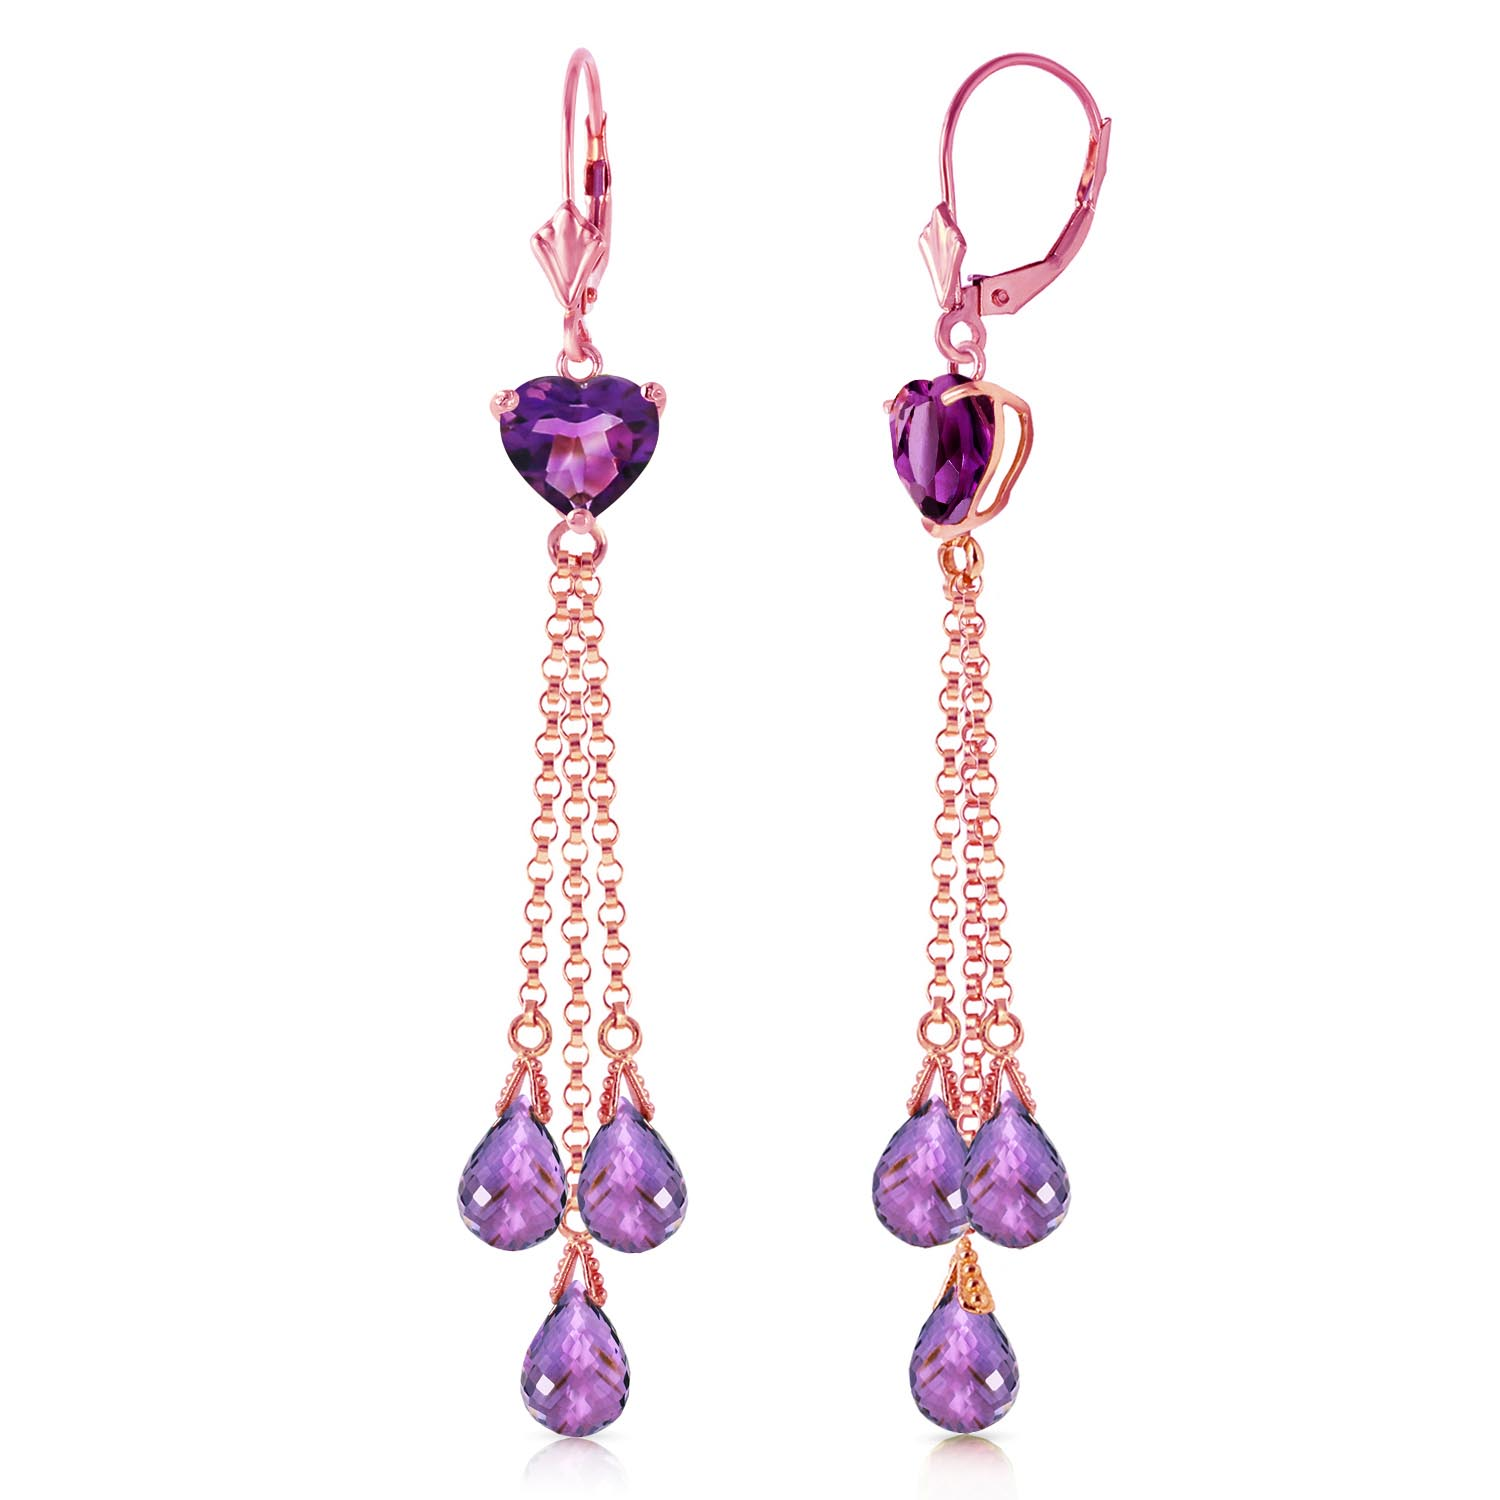 Bargain Amethyst Vestige Heart Drop Earrings 9.5ctw in 9ct Rose Gold Stockists